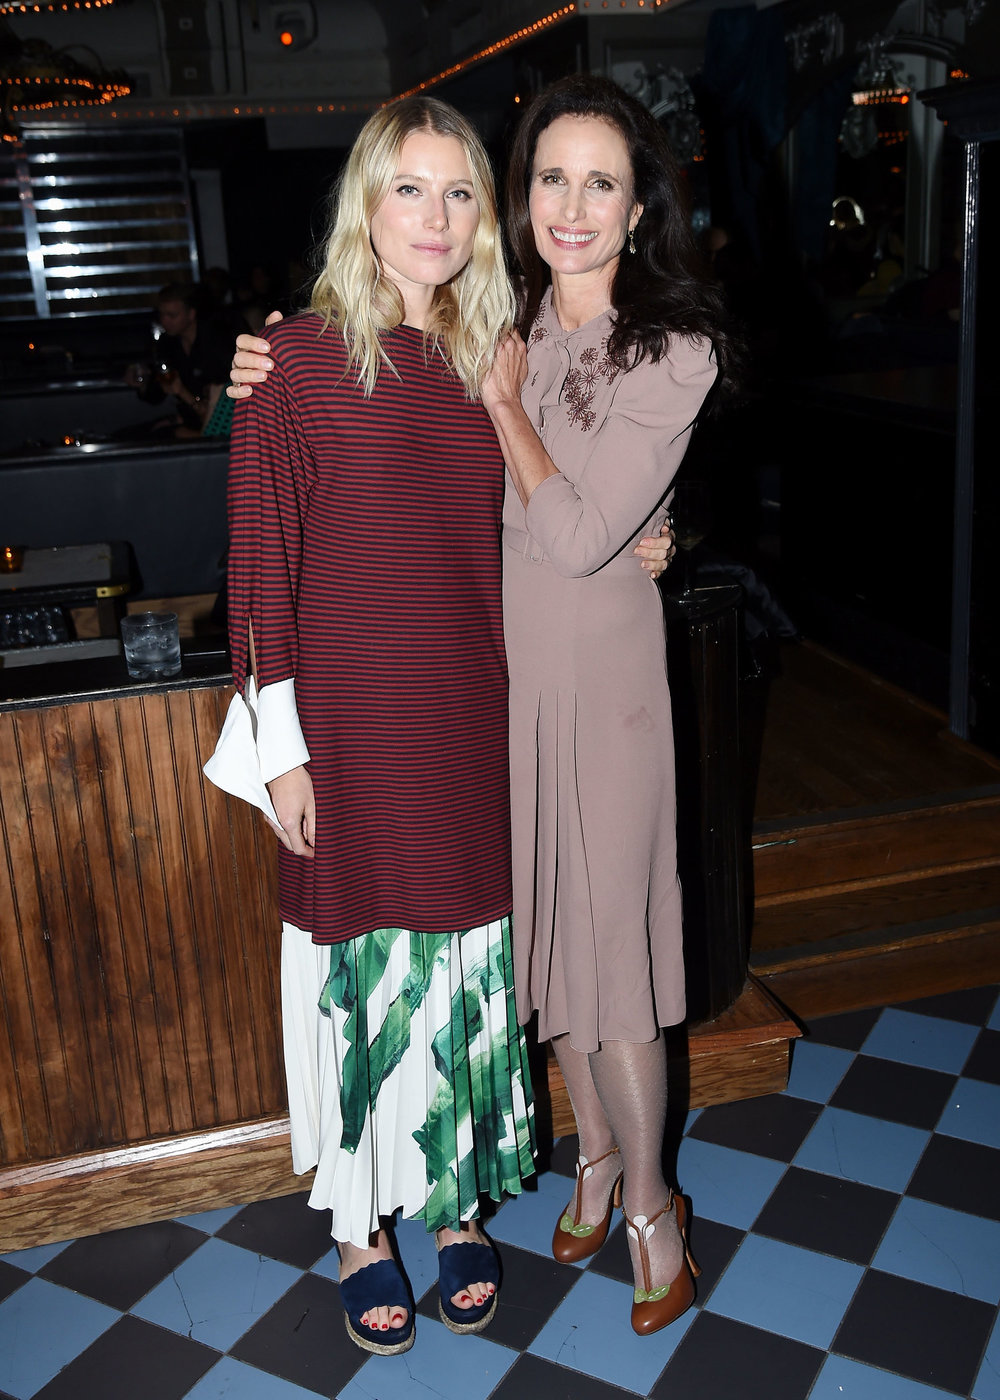 Dree Hemingway and Andie MacDowell 2017 Tribeca Film Festival After Party for Love After Love at Up and Down – 4/22/17 (Nick Hunt, Getty Images)